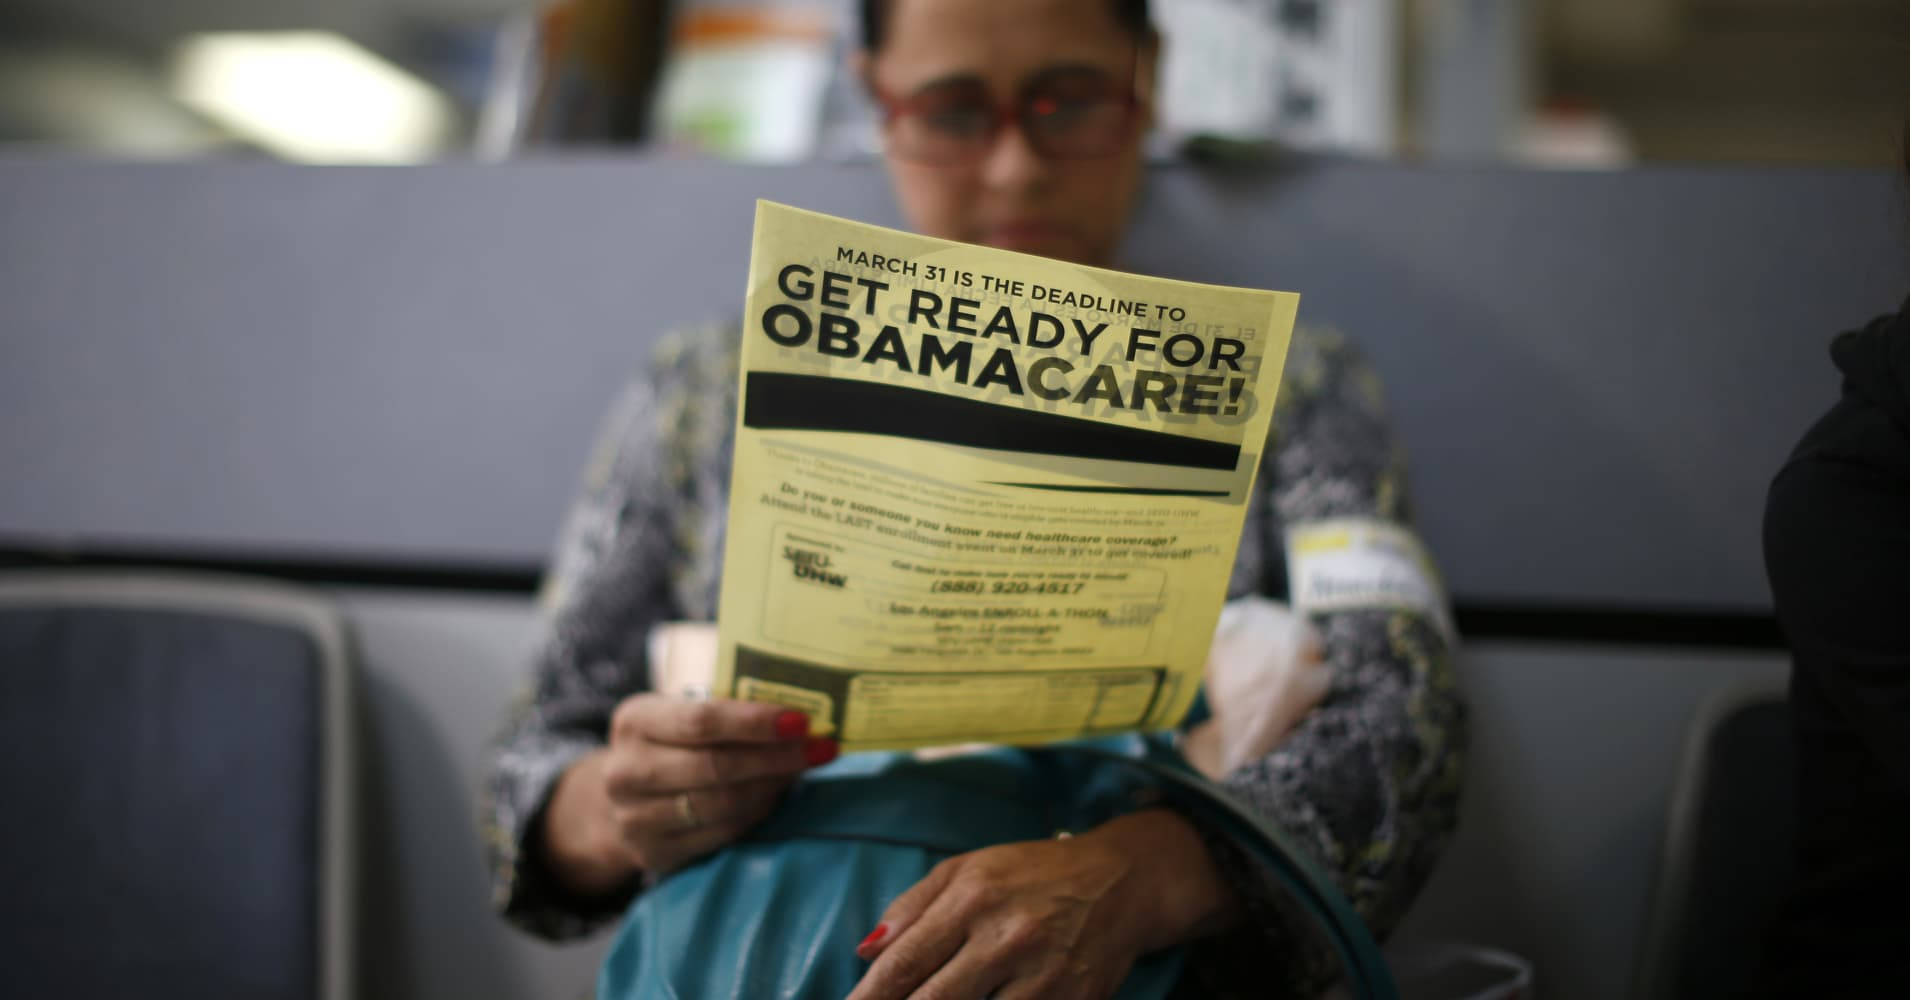 The end of Obamacare begins